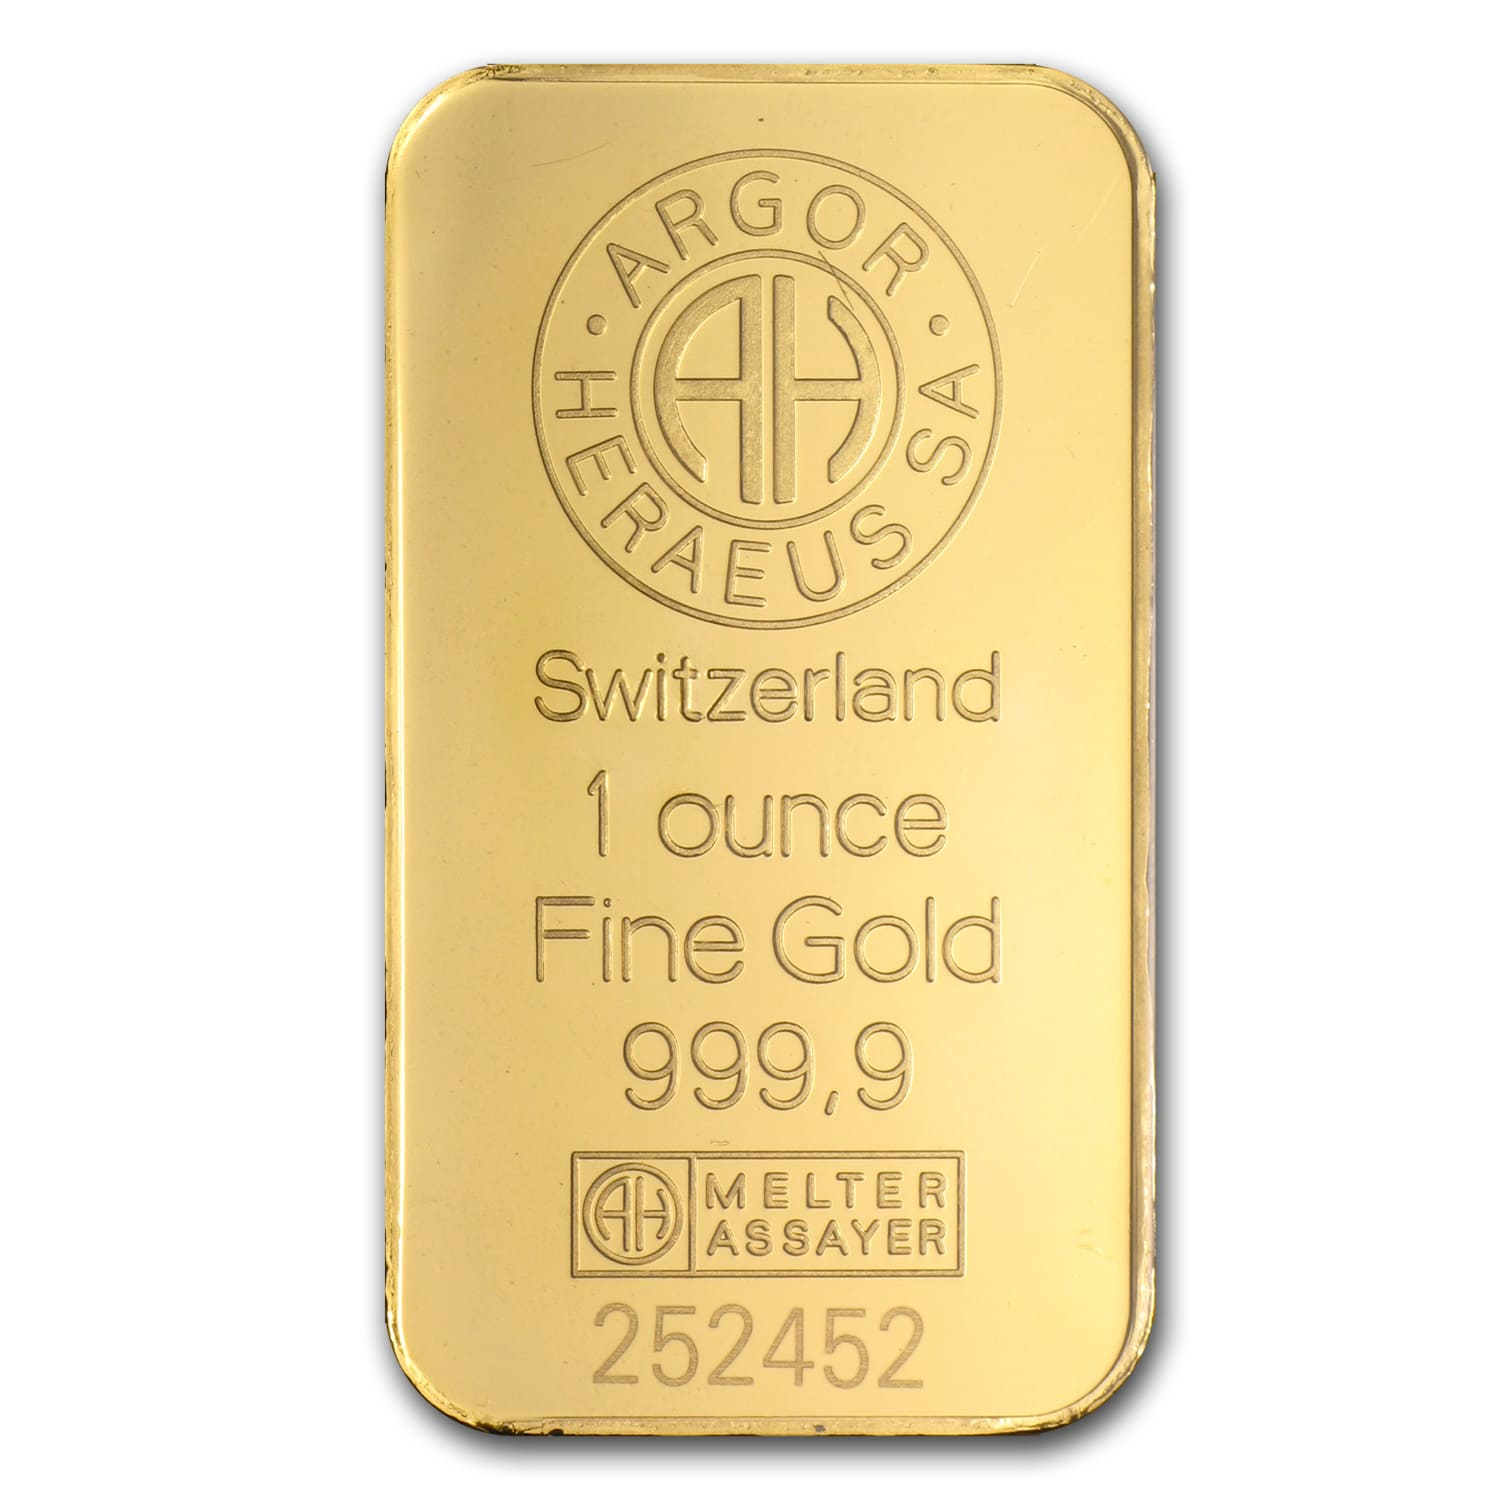 1 oz Gold Bar - Argor-Heraeus